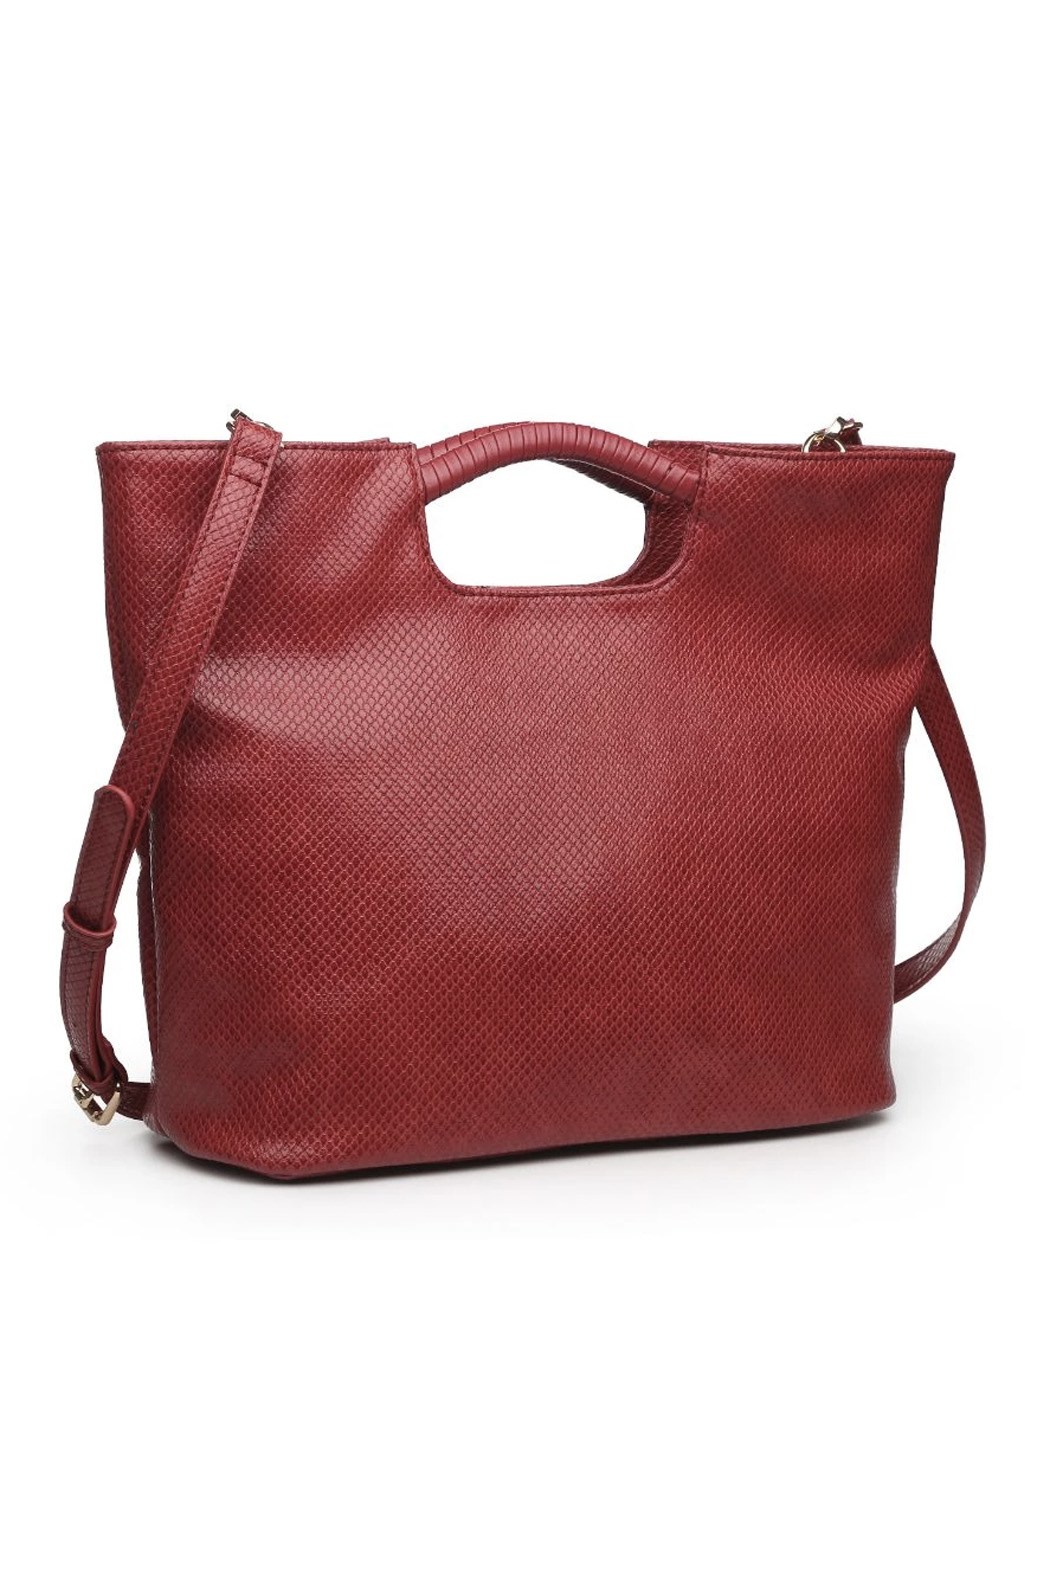 Urban Expressions Silas Vegan Leather Handbag - Front Full Image